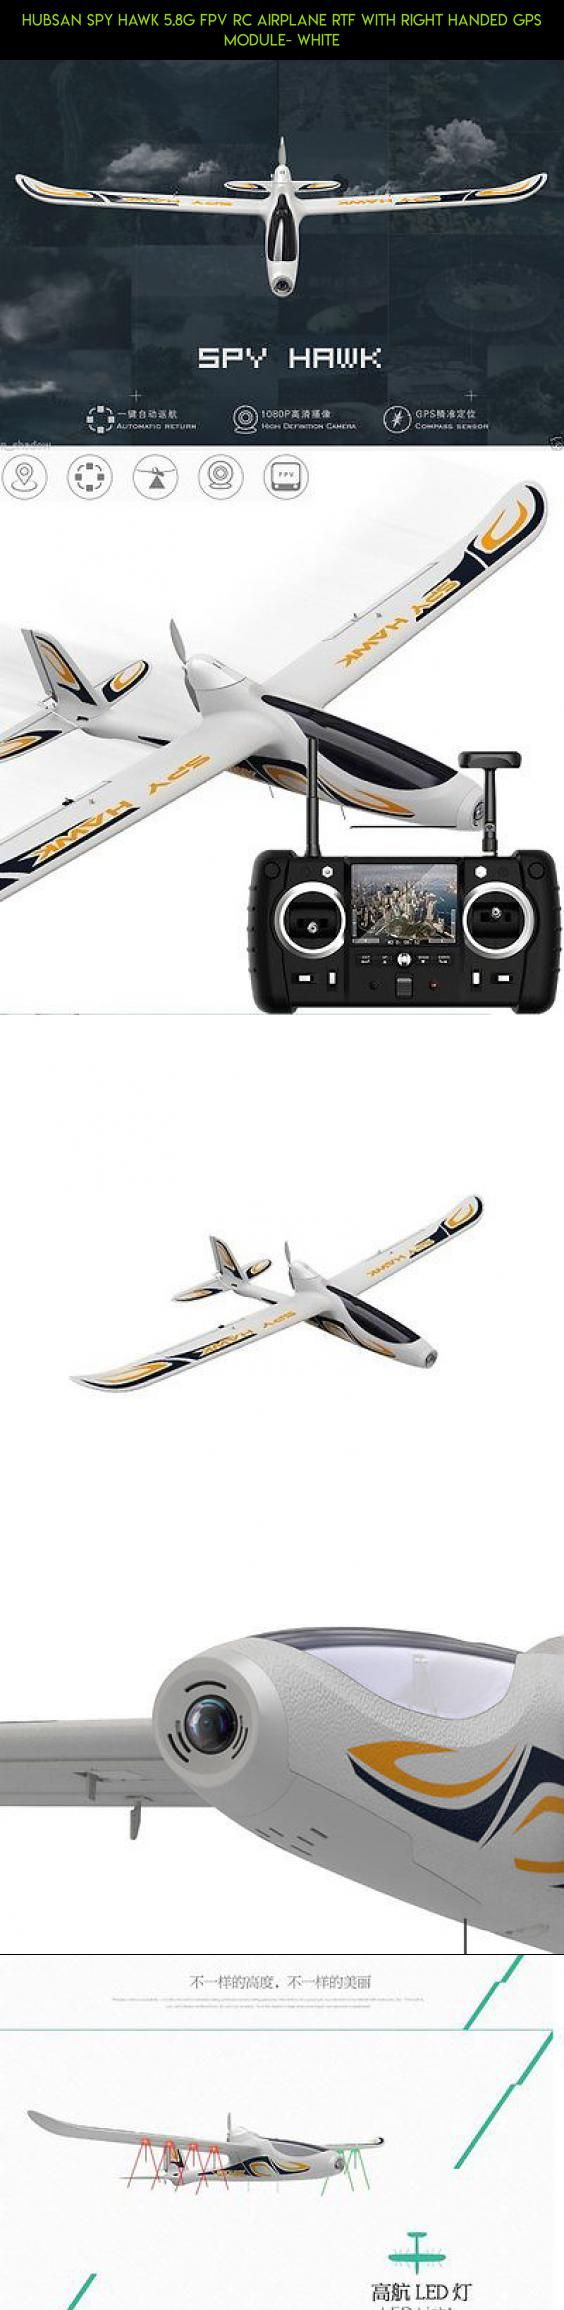 Hubsan SPY HAWK 5.8G FPV RC Airplane RTF With Right Handed GPS Module- White #racing #tech #gadgets #hubsan #plans #drone #kit #spy #shopping #fpv #hawk #technology #products #camera #parts